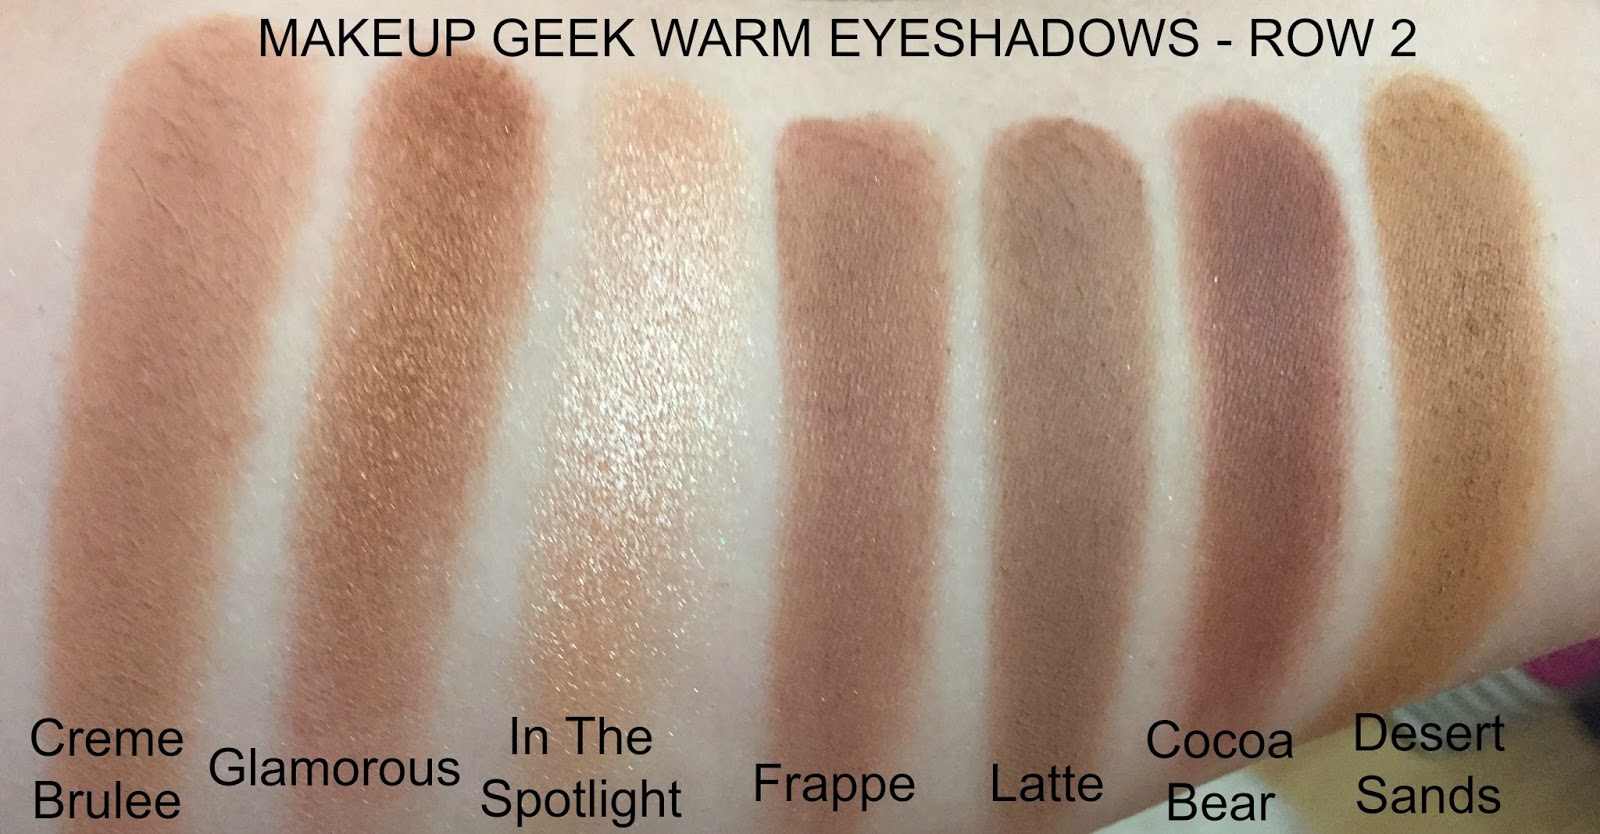 Creme Brulee Is An Absolute Necessity If You Re Interested In Trying Out Some Warm Toned Mug Eyeshadows As This Eyeshadow One Of My Top 10